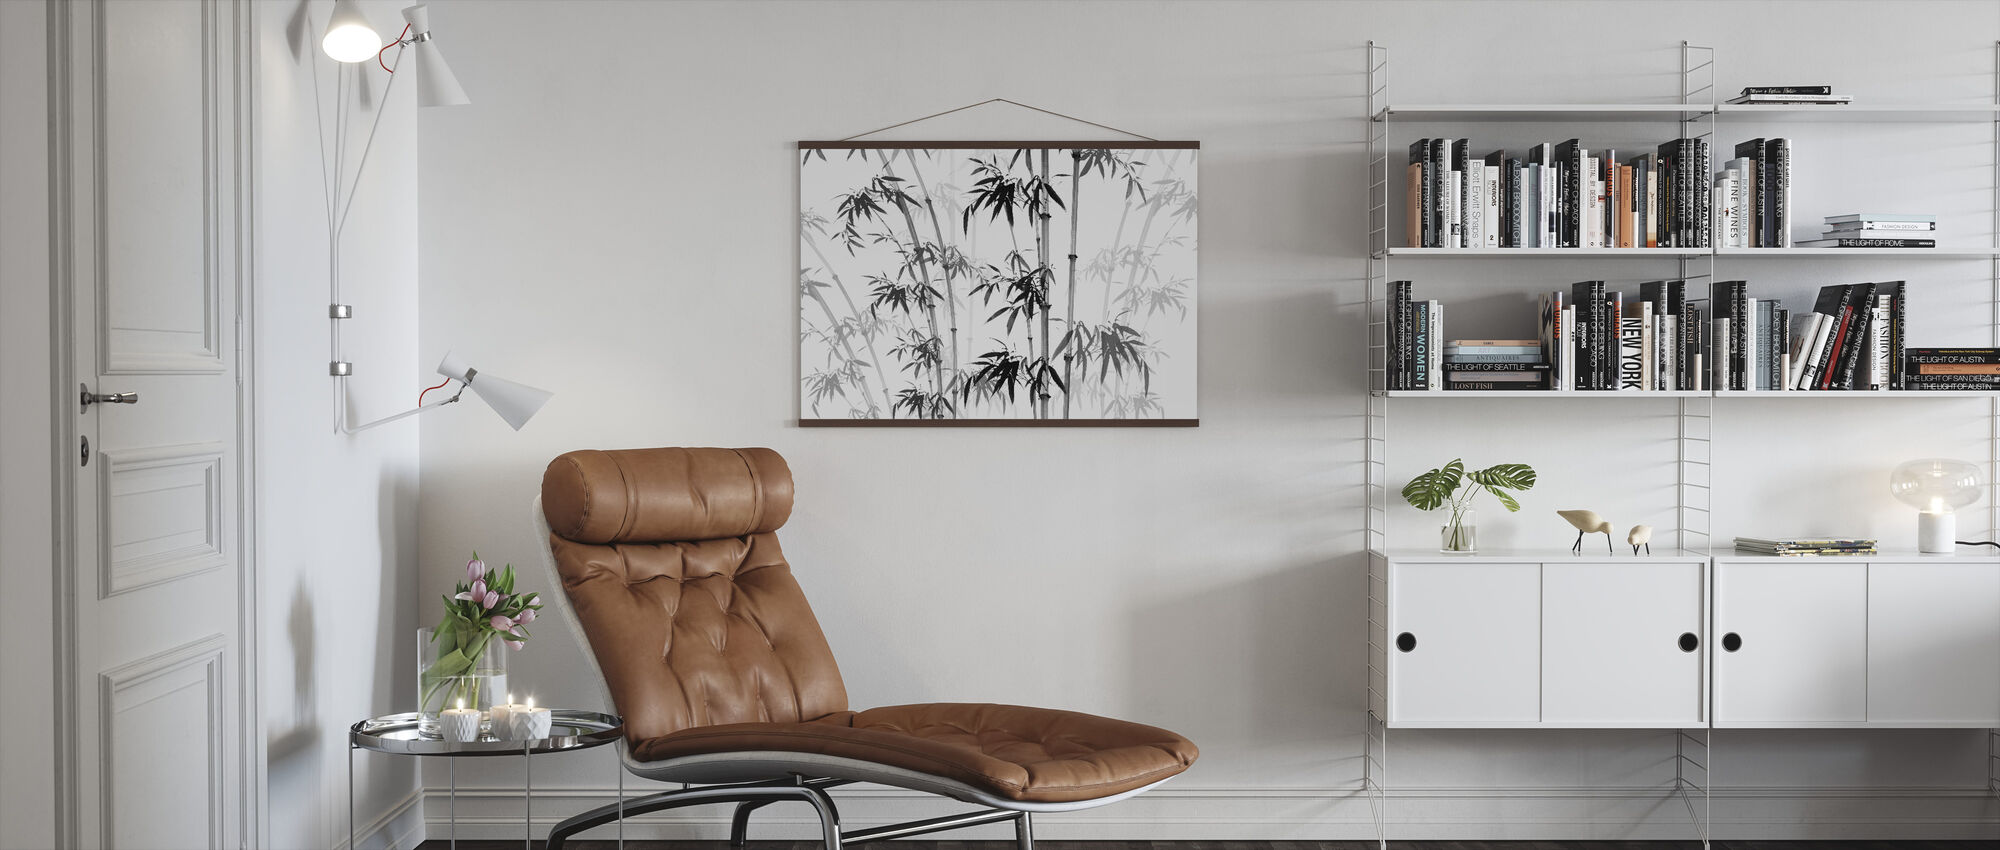 Bamboo Noix - Poster - Living Room